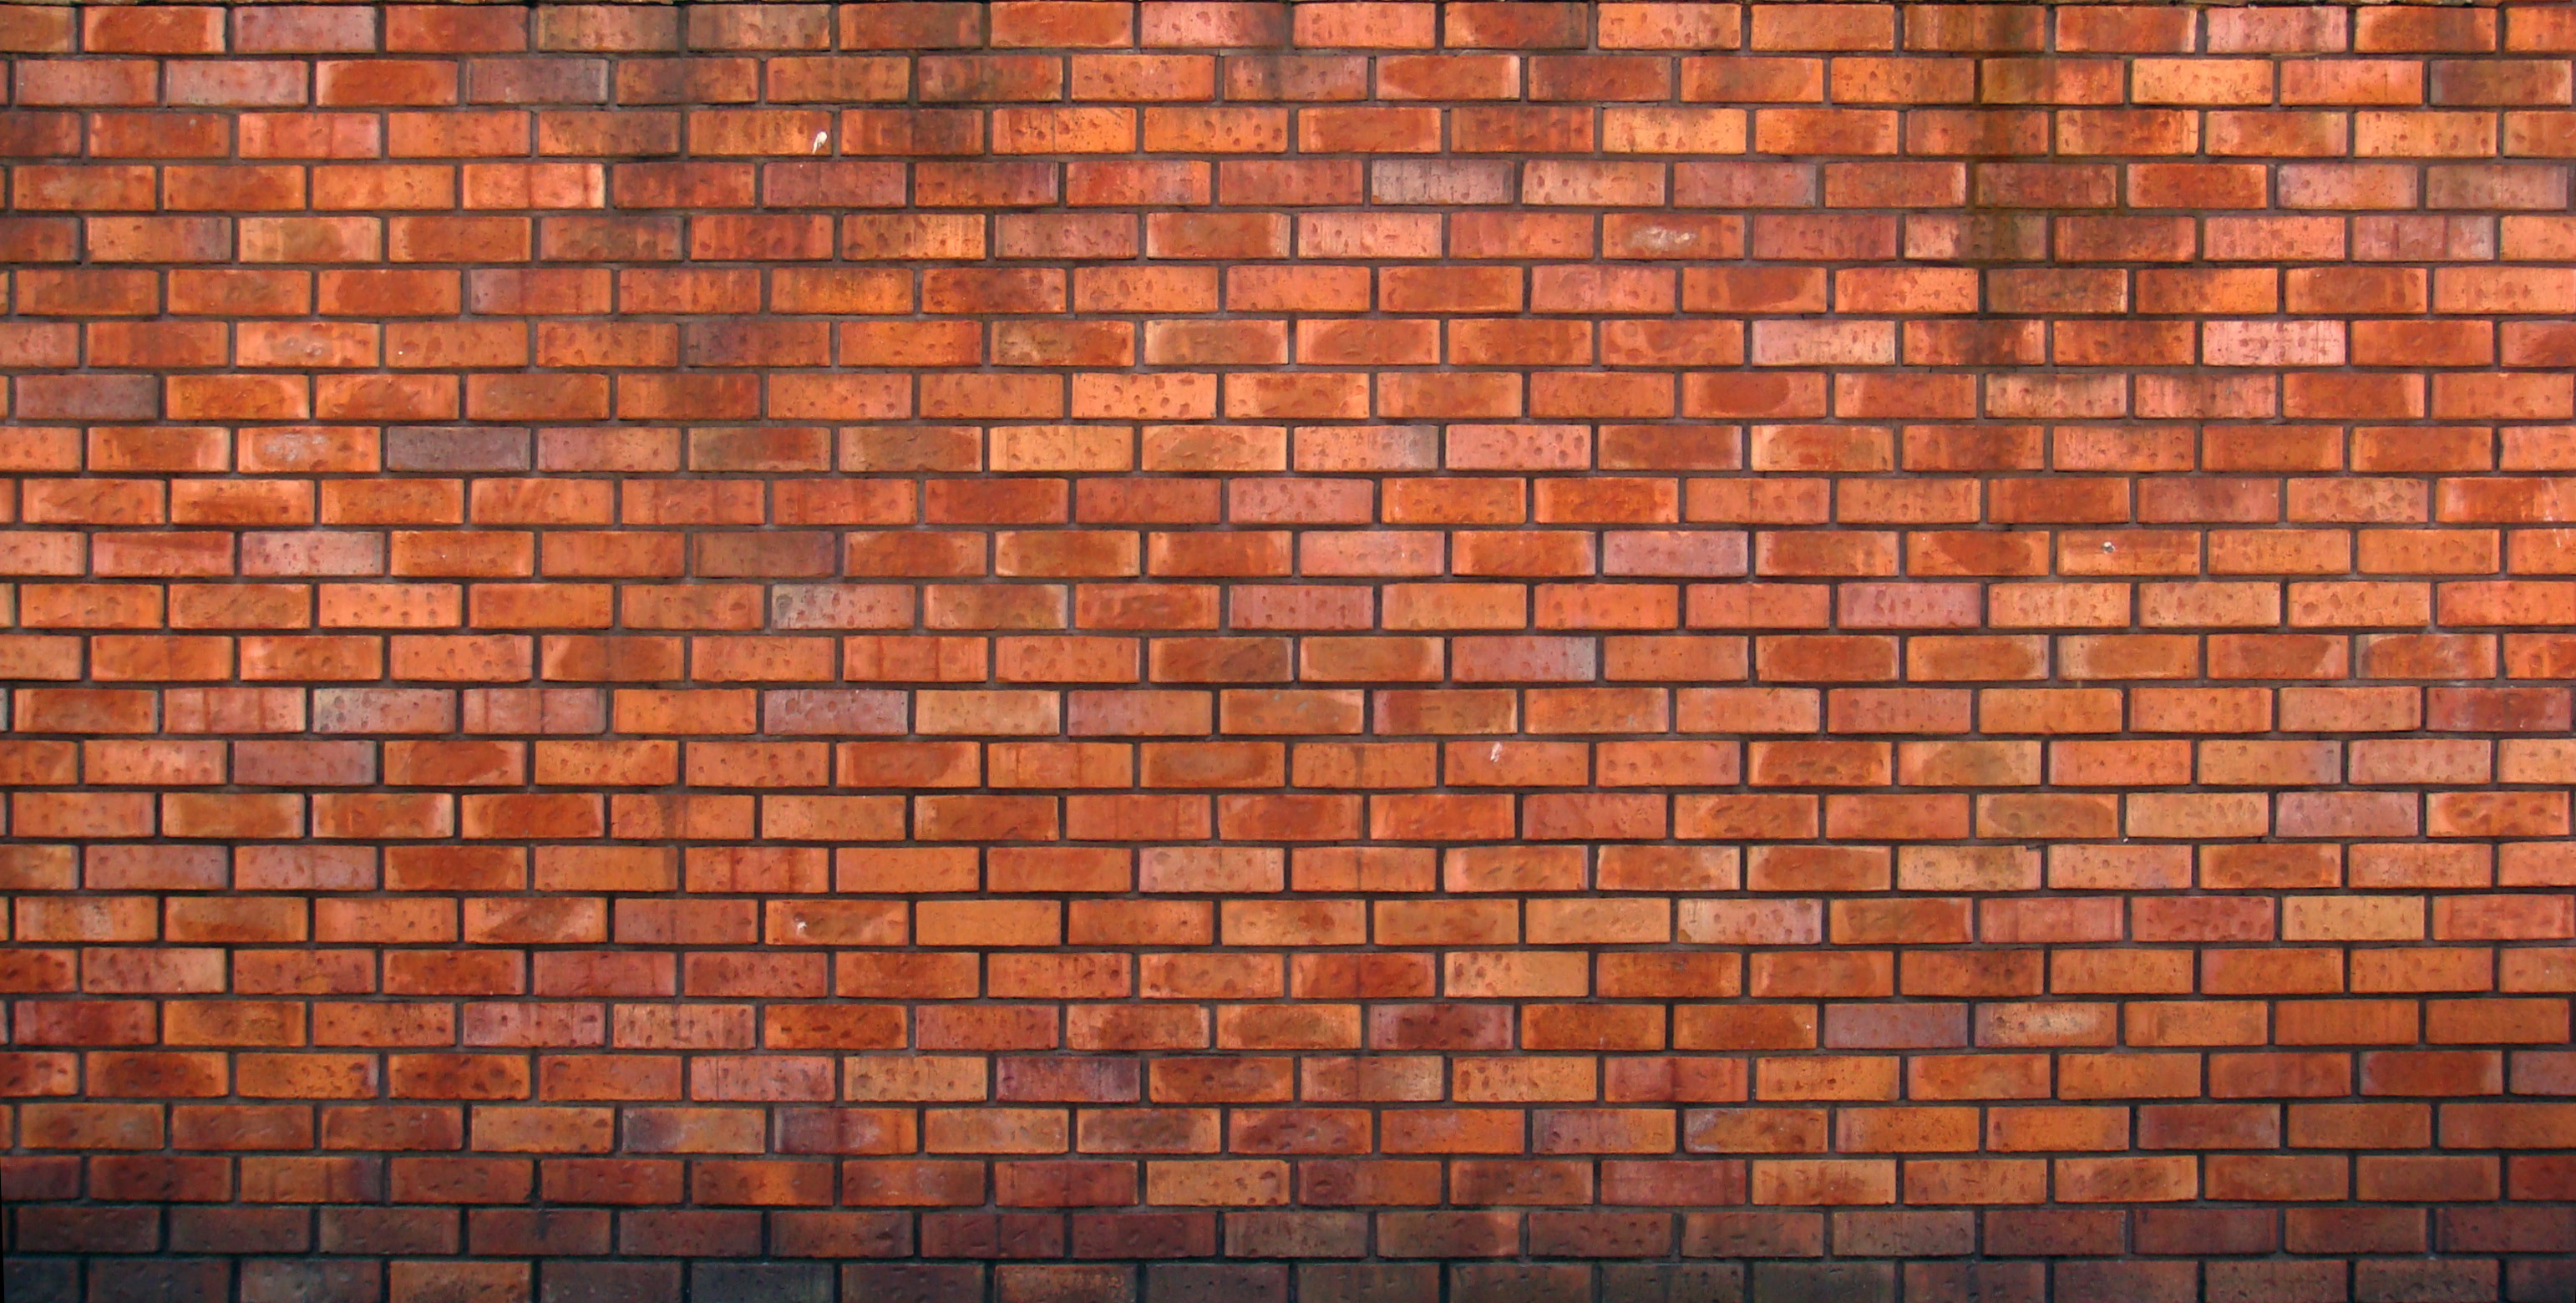 Brick clipart brick background, Brick brick background.